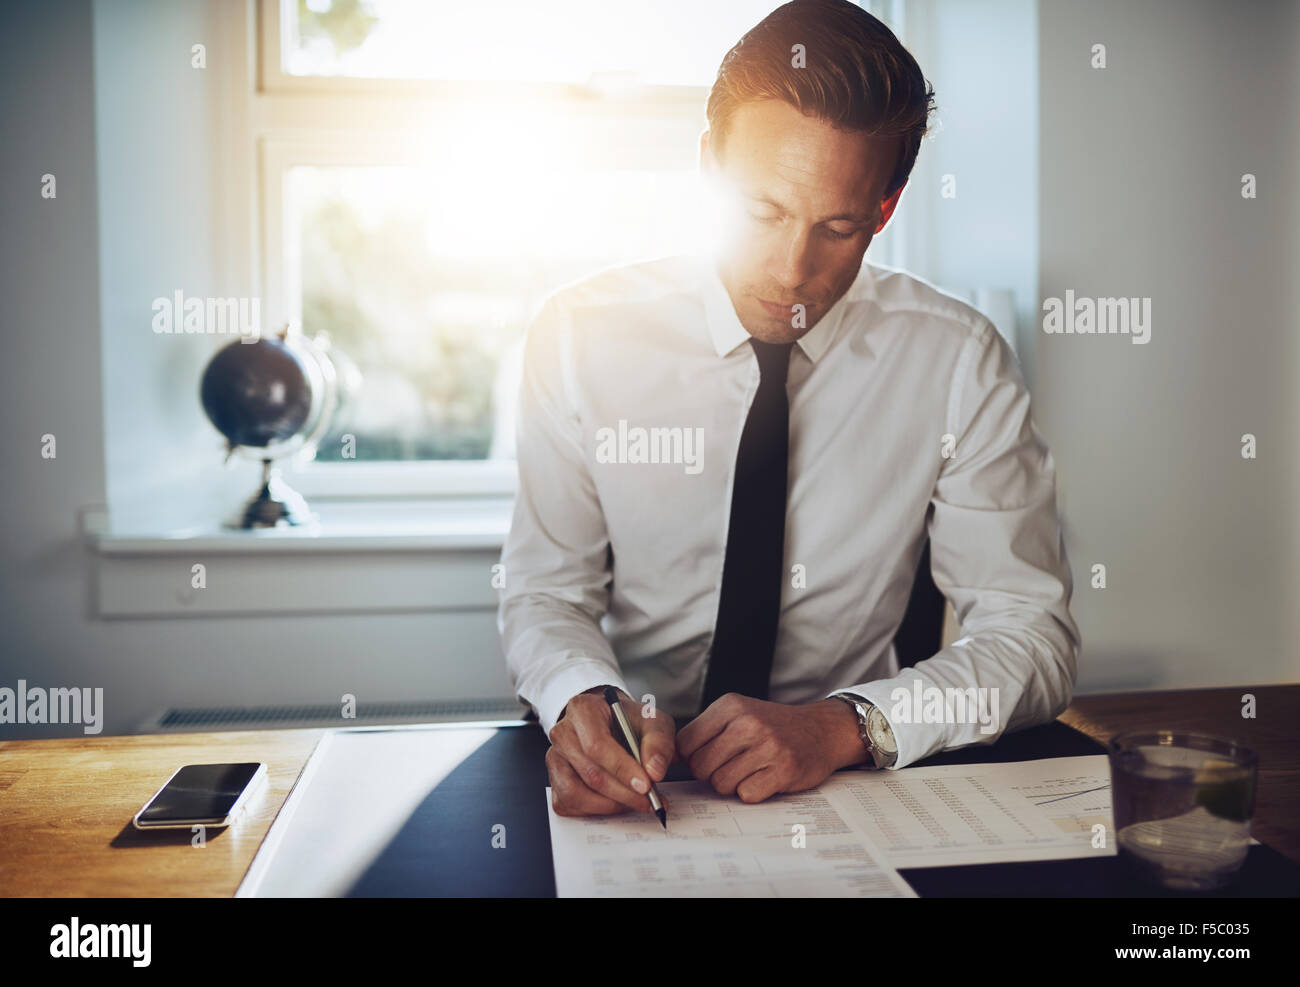 White business man signing a contract and looking at documents at his office while looking serious - Stock Image